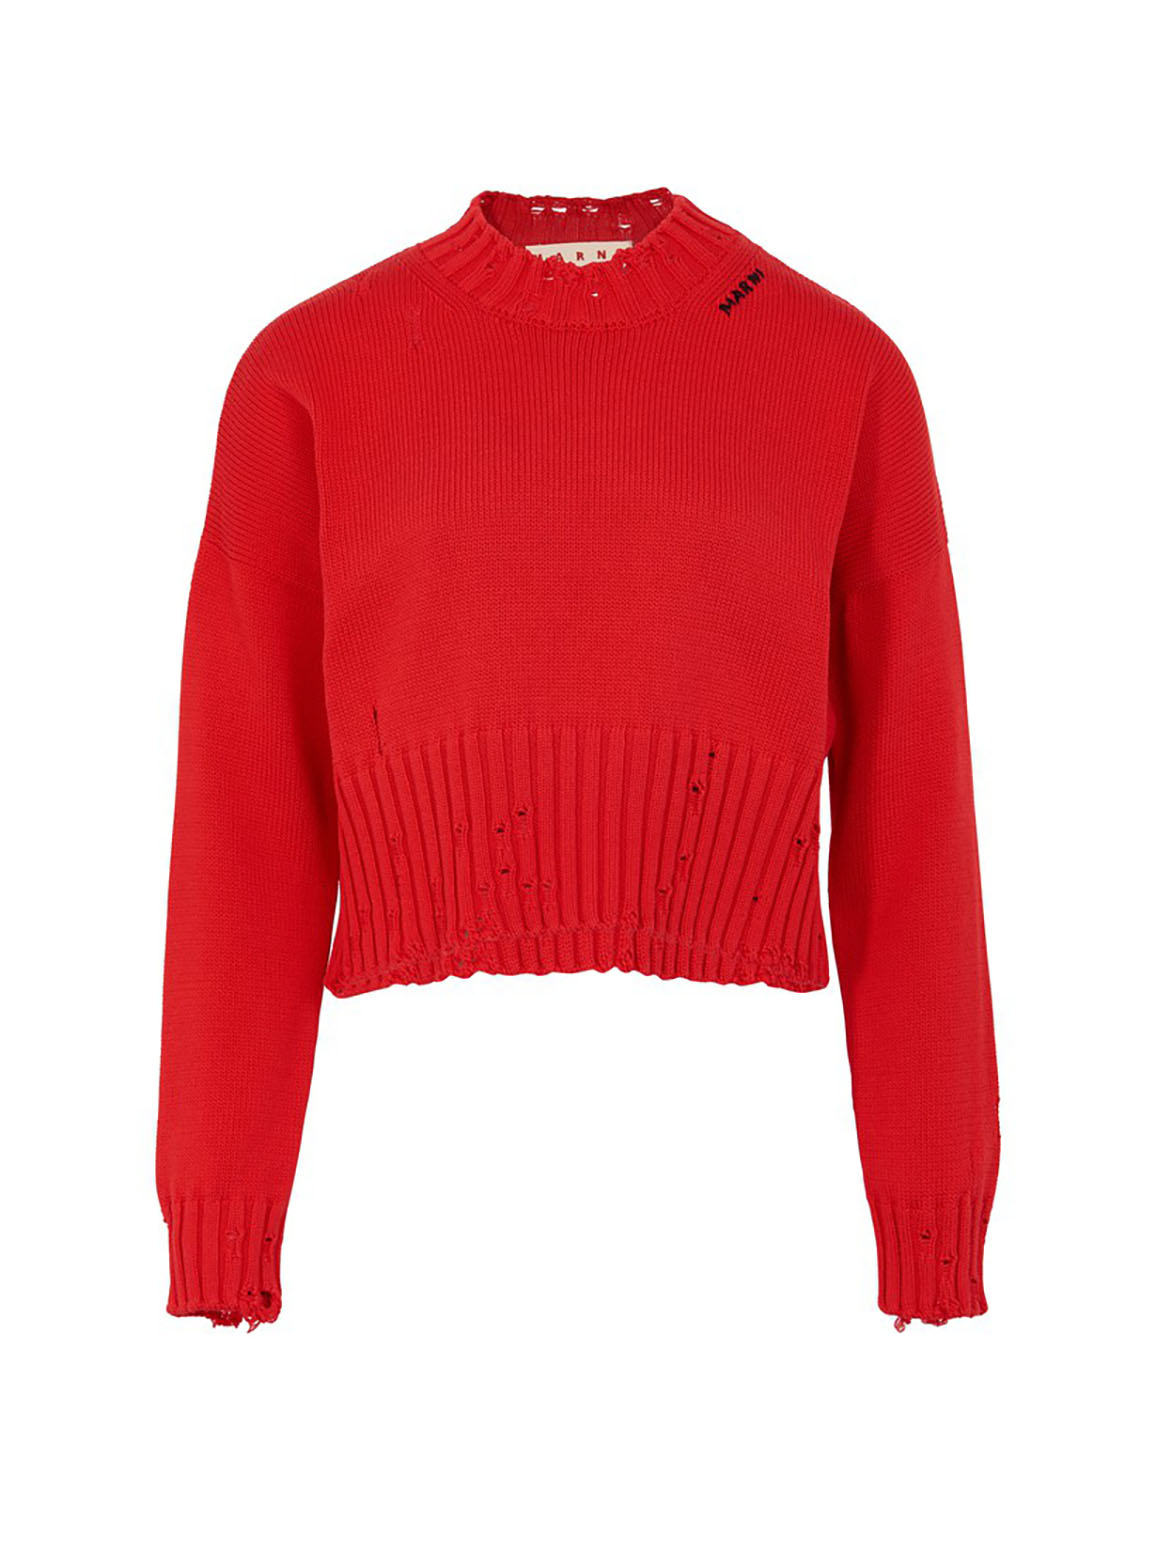 Twisted cotton crew-neck sweater